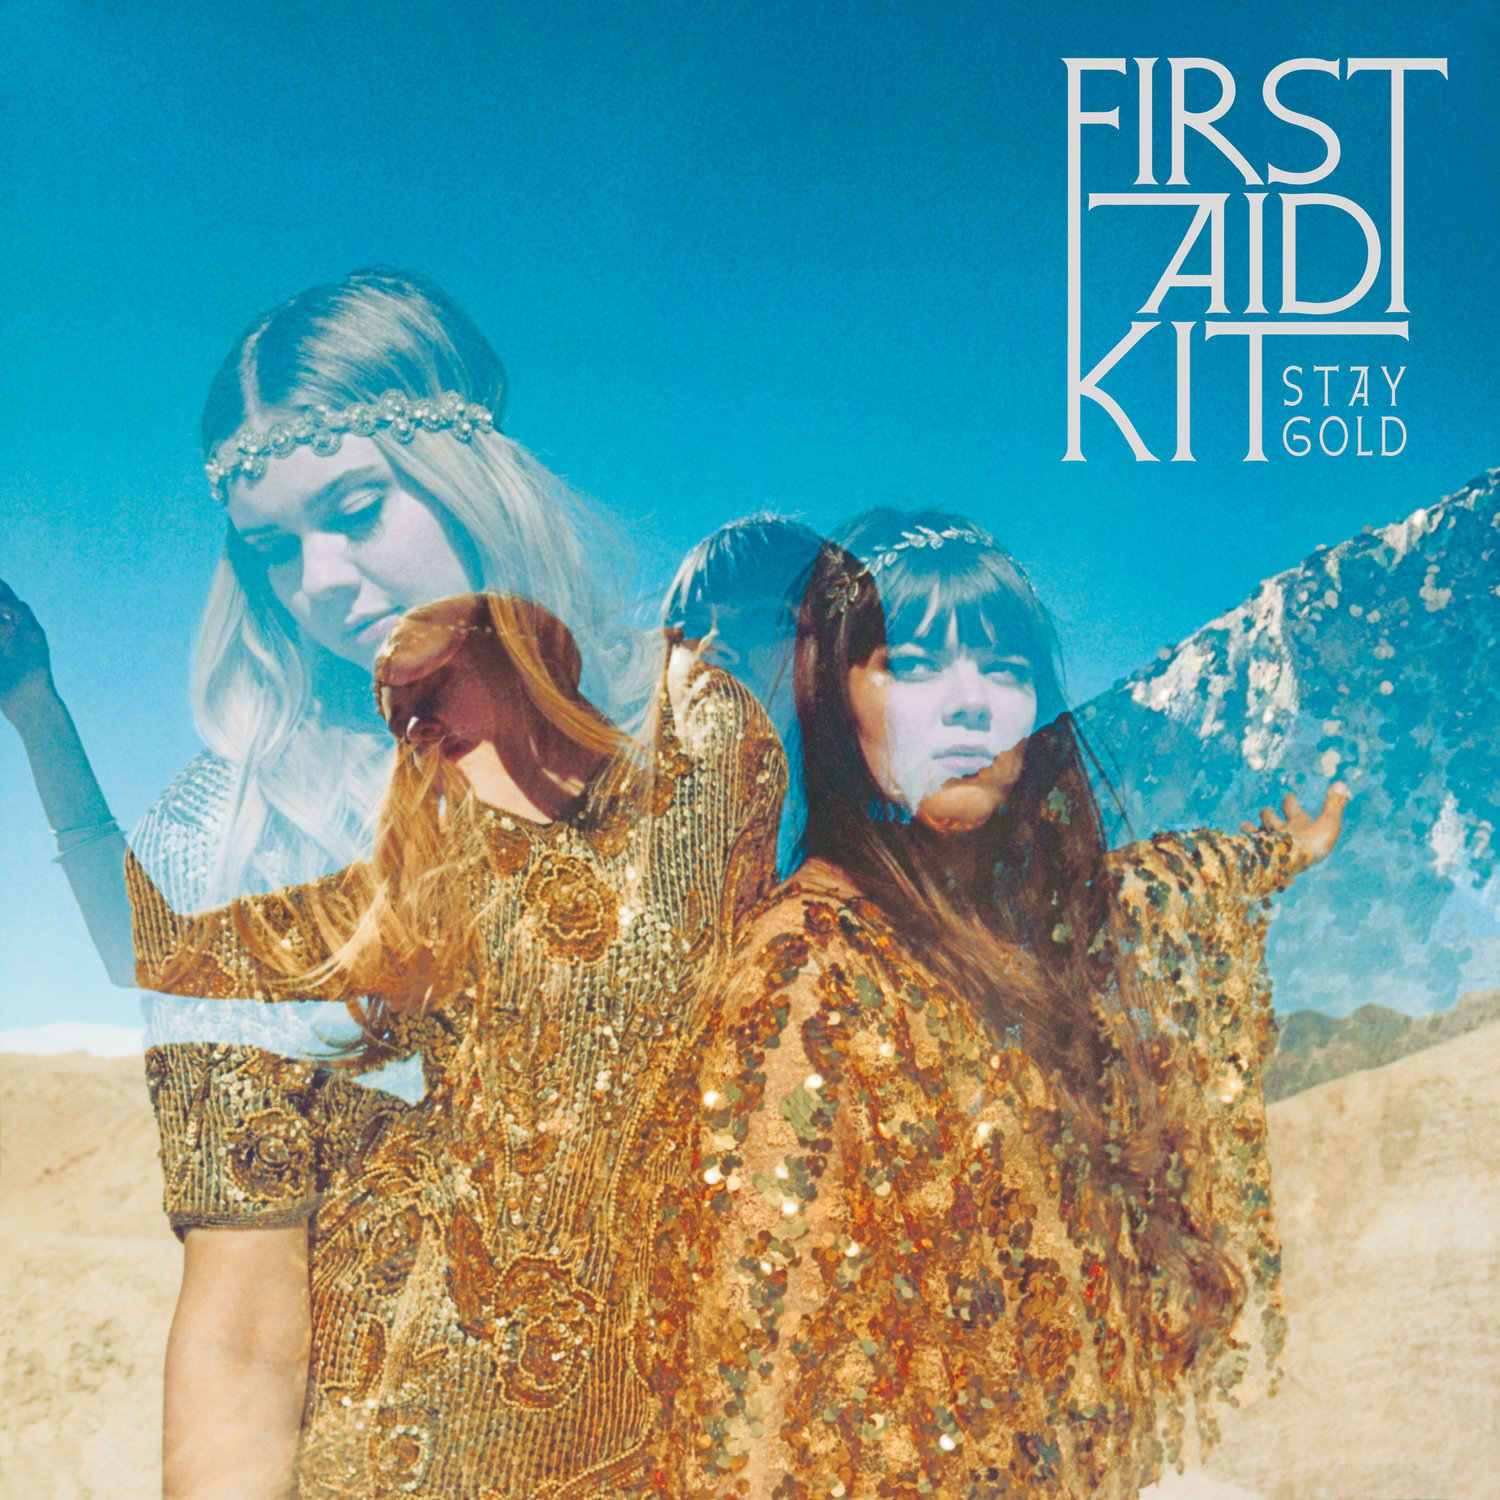 First+Aid+Kit+-+Stay+Gold+-+Neil+Krug+copy.jpg